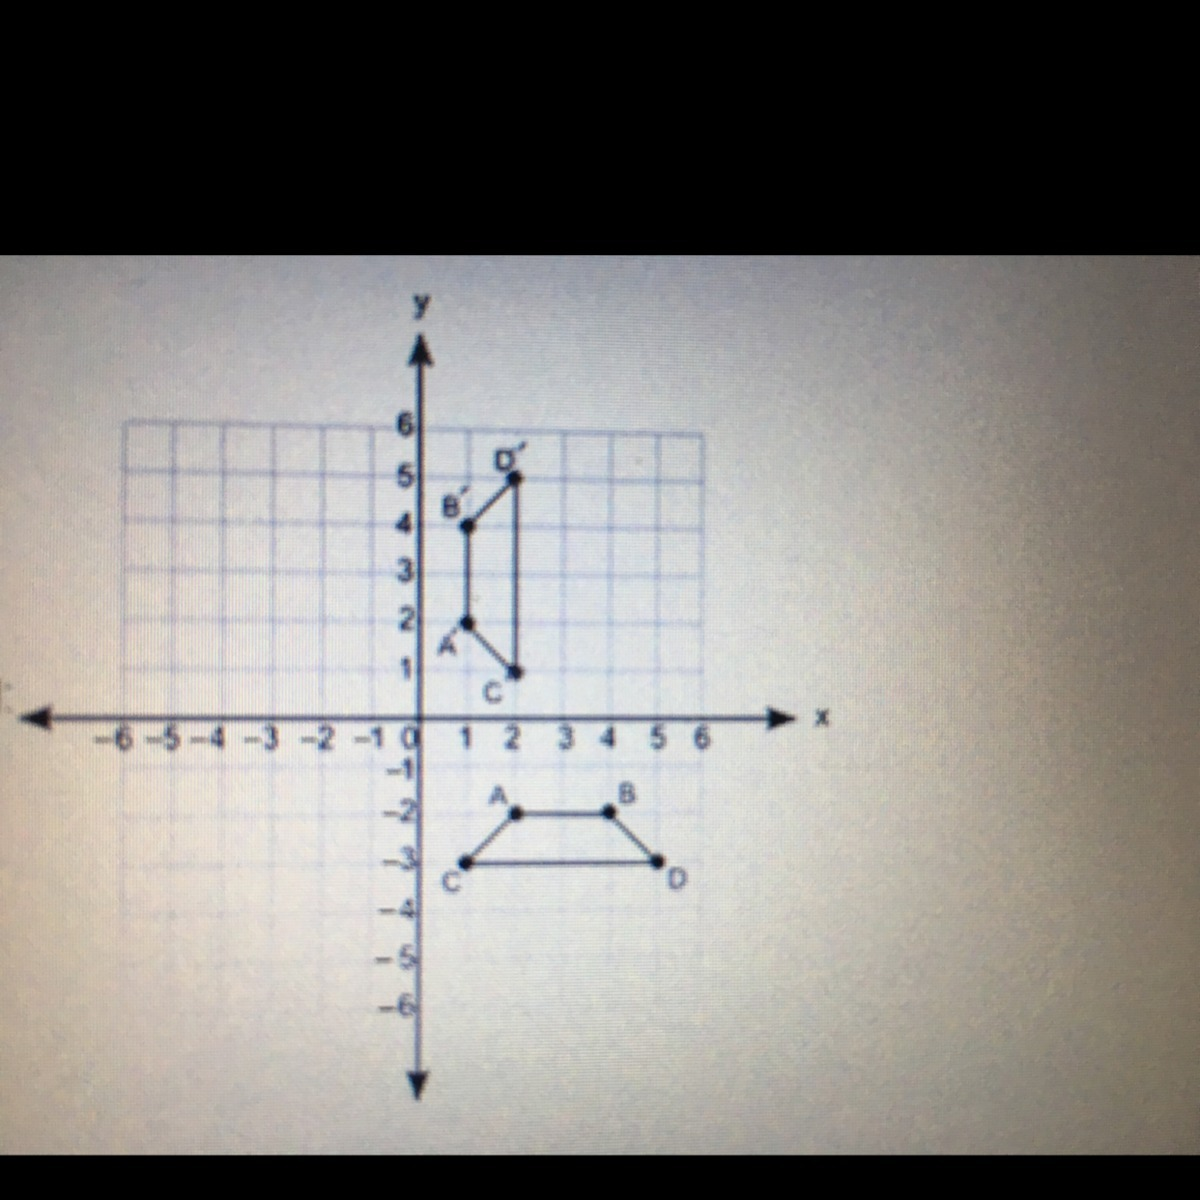 Please Help 10 Points 1 Polygons Abcd And A B C D Are